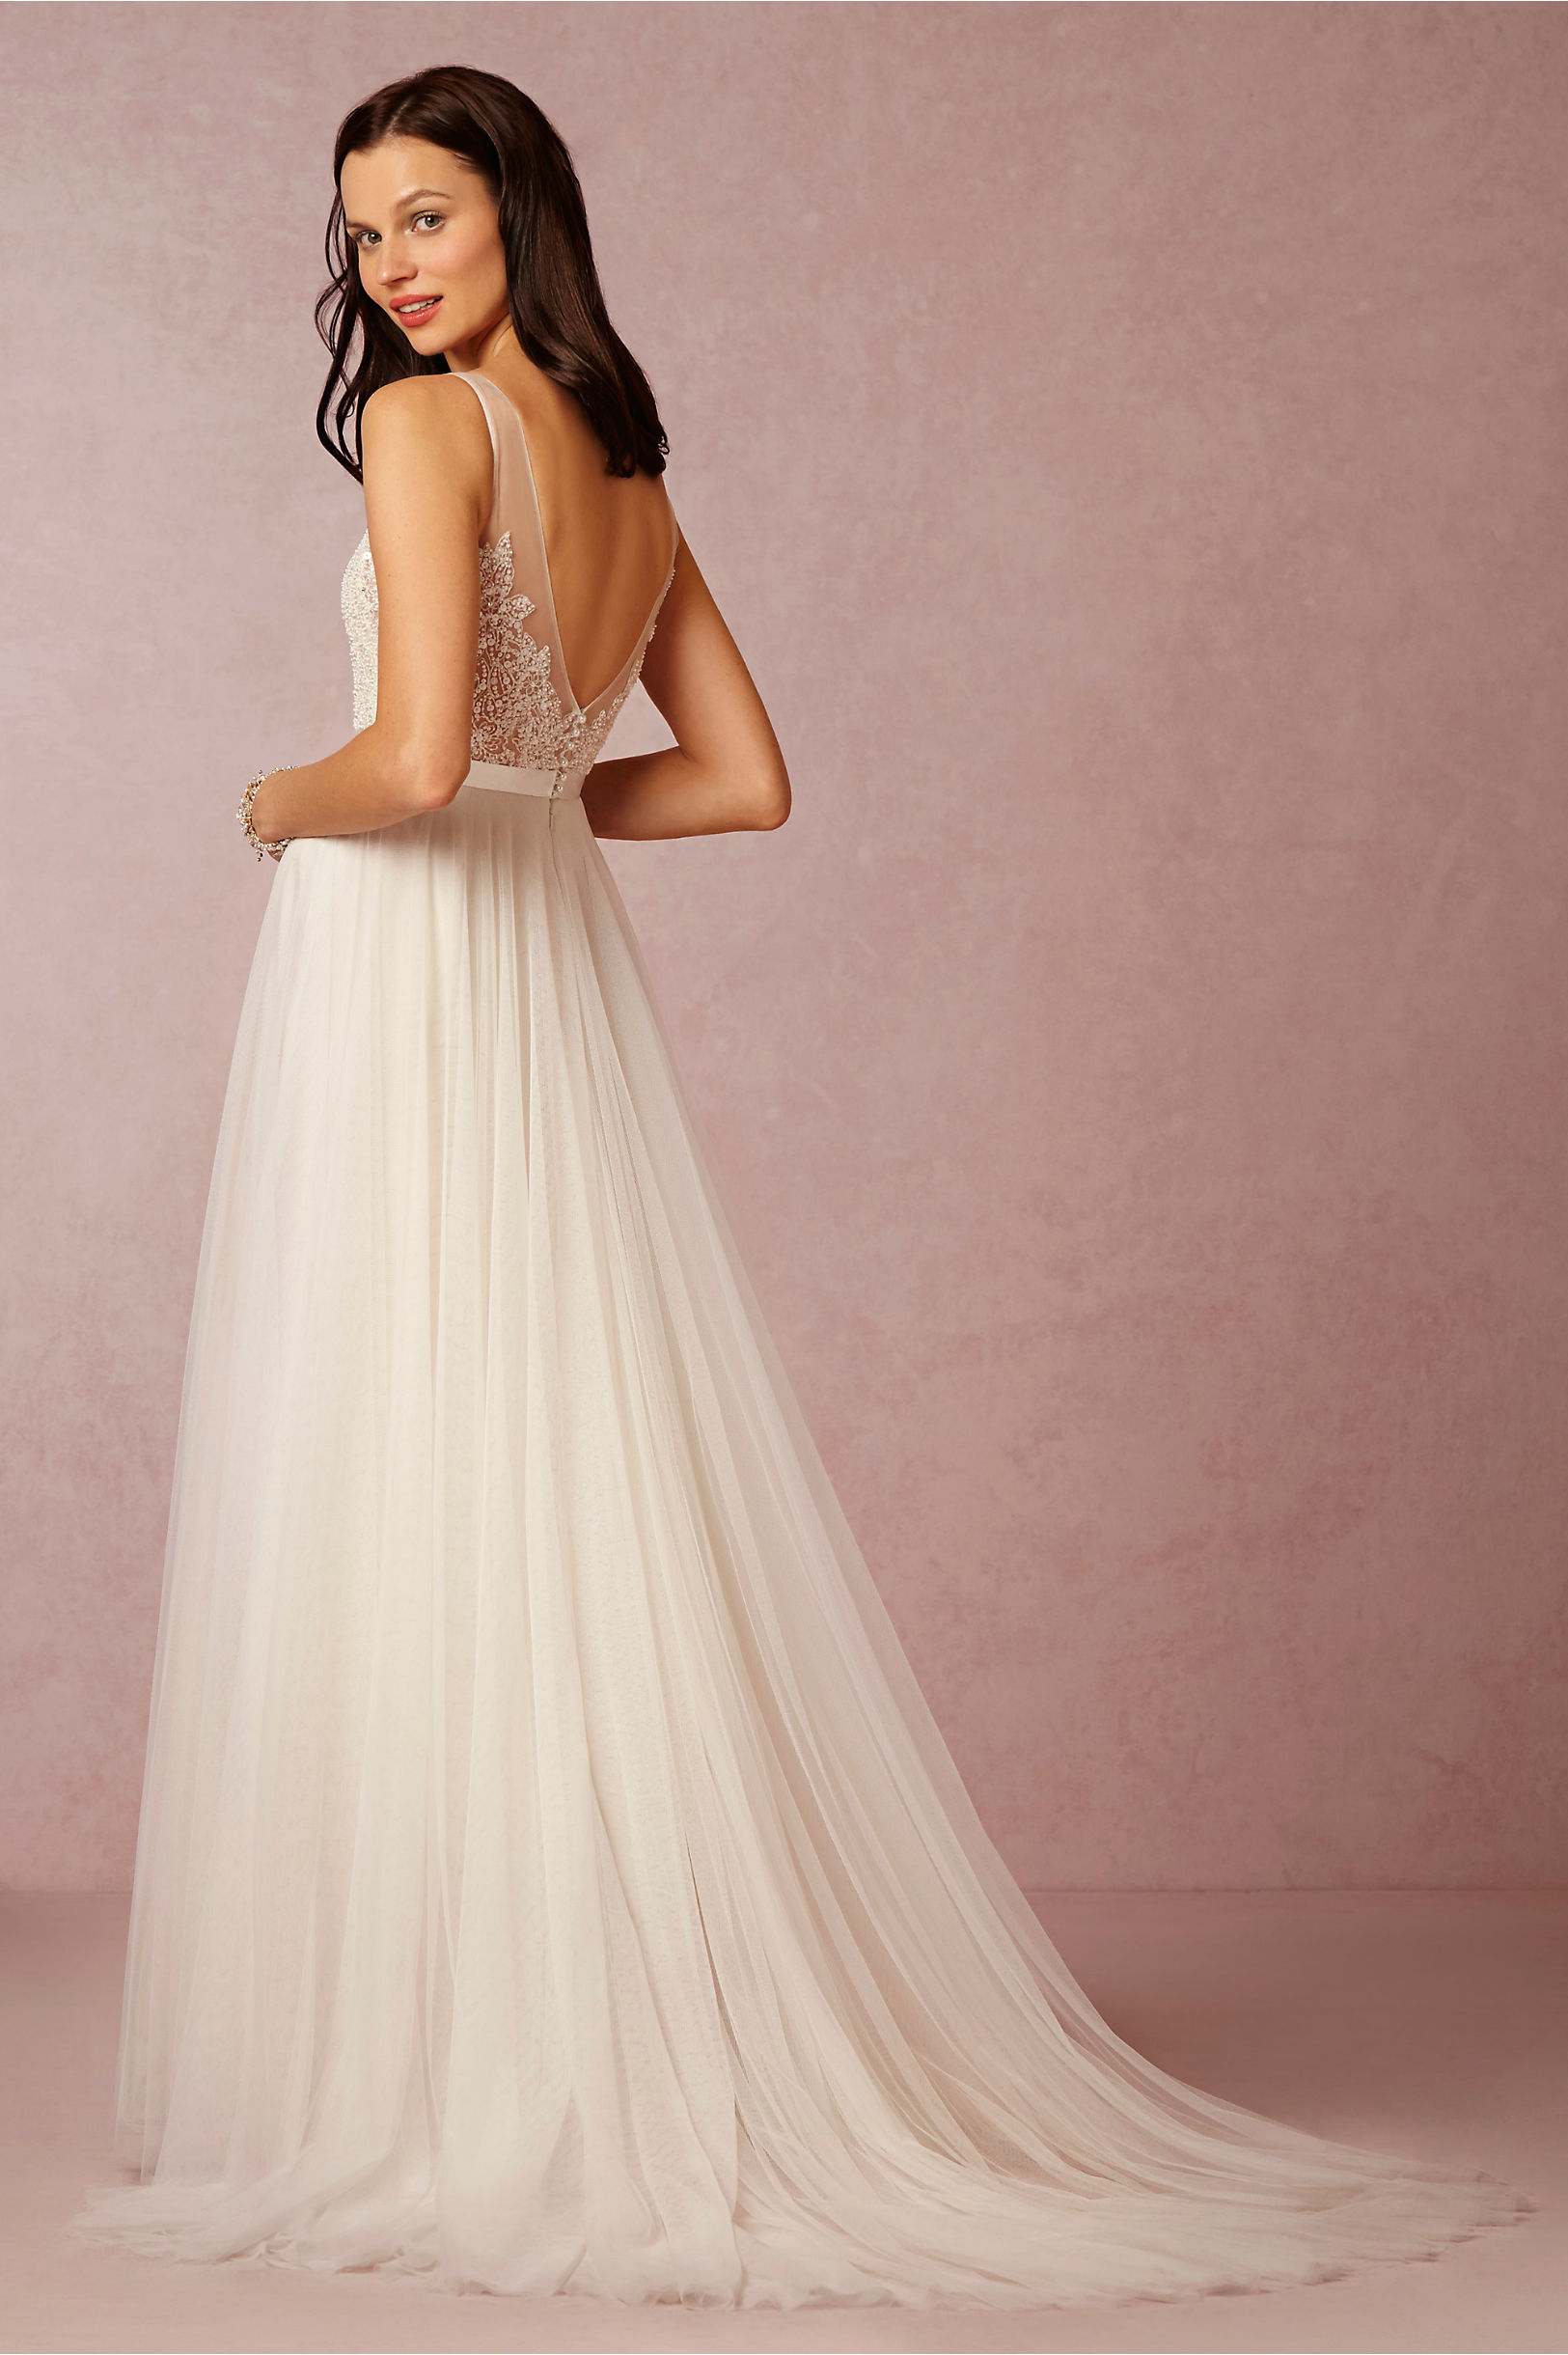 Have questions about alterations? Professional bridal seamstress ...